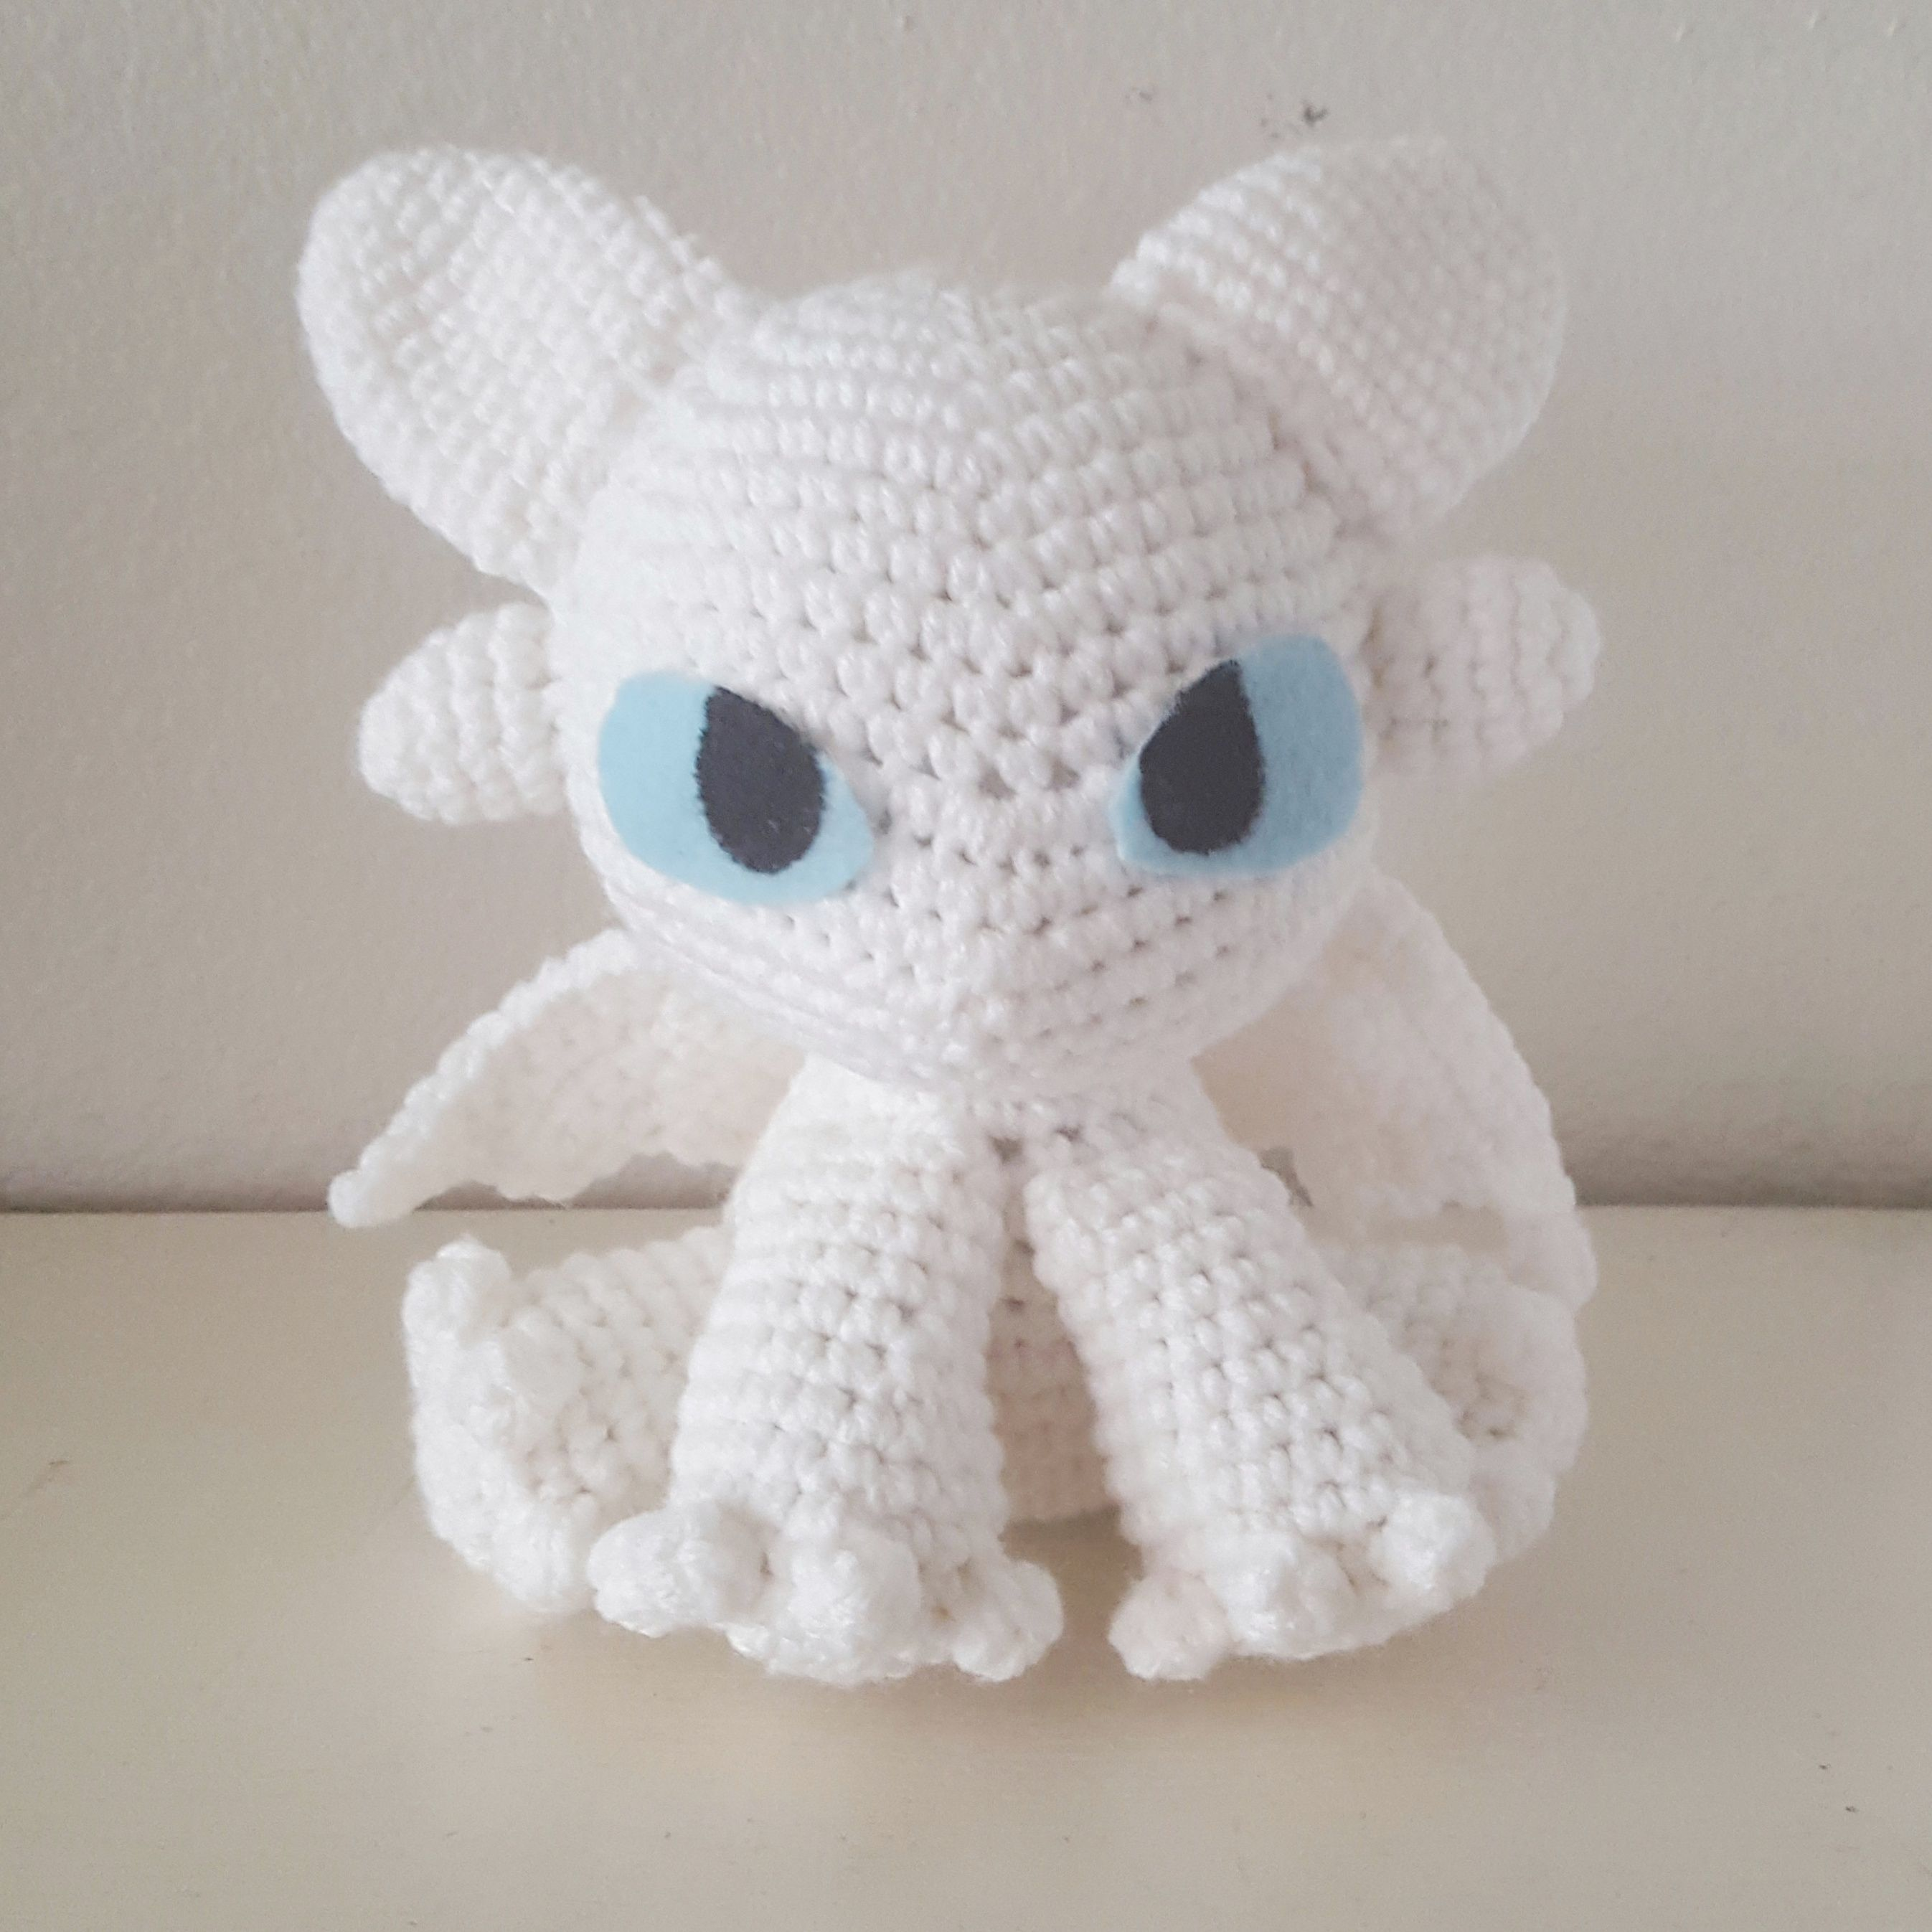 Amigurumi for Beginners How to make square and crochet rectangle ... | 2693x2693